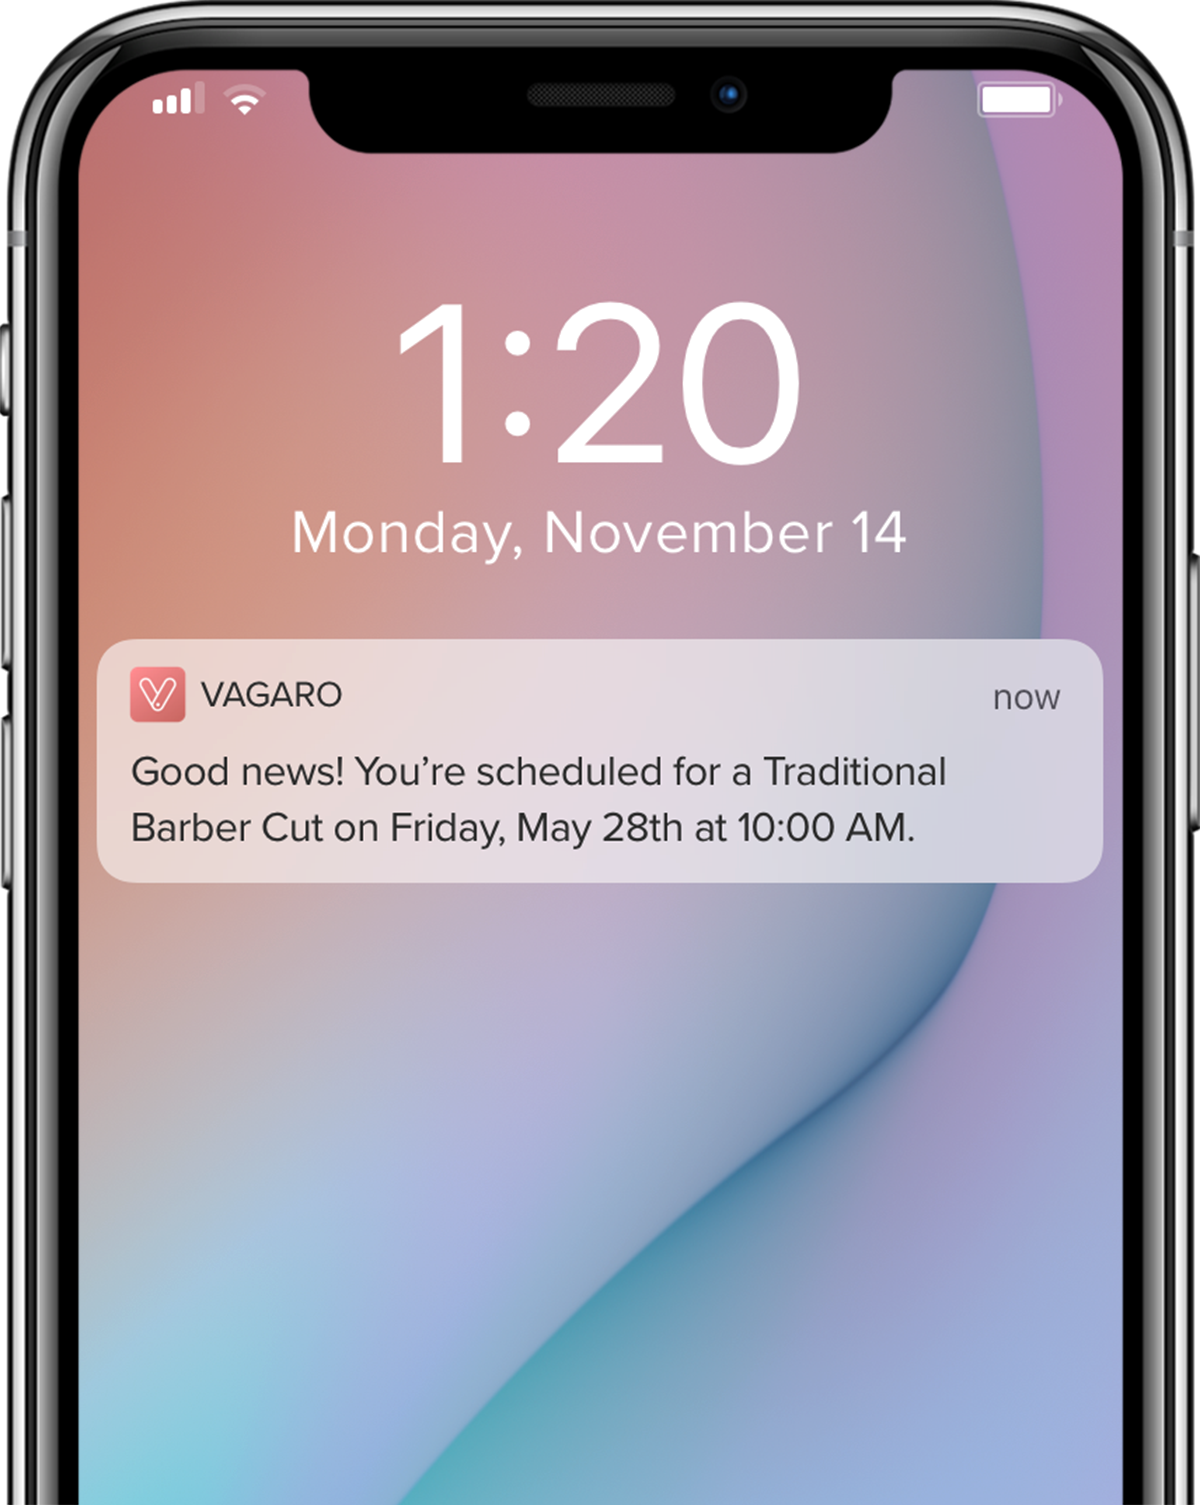 Vagaro Notifications via Email, Text or Push